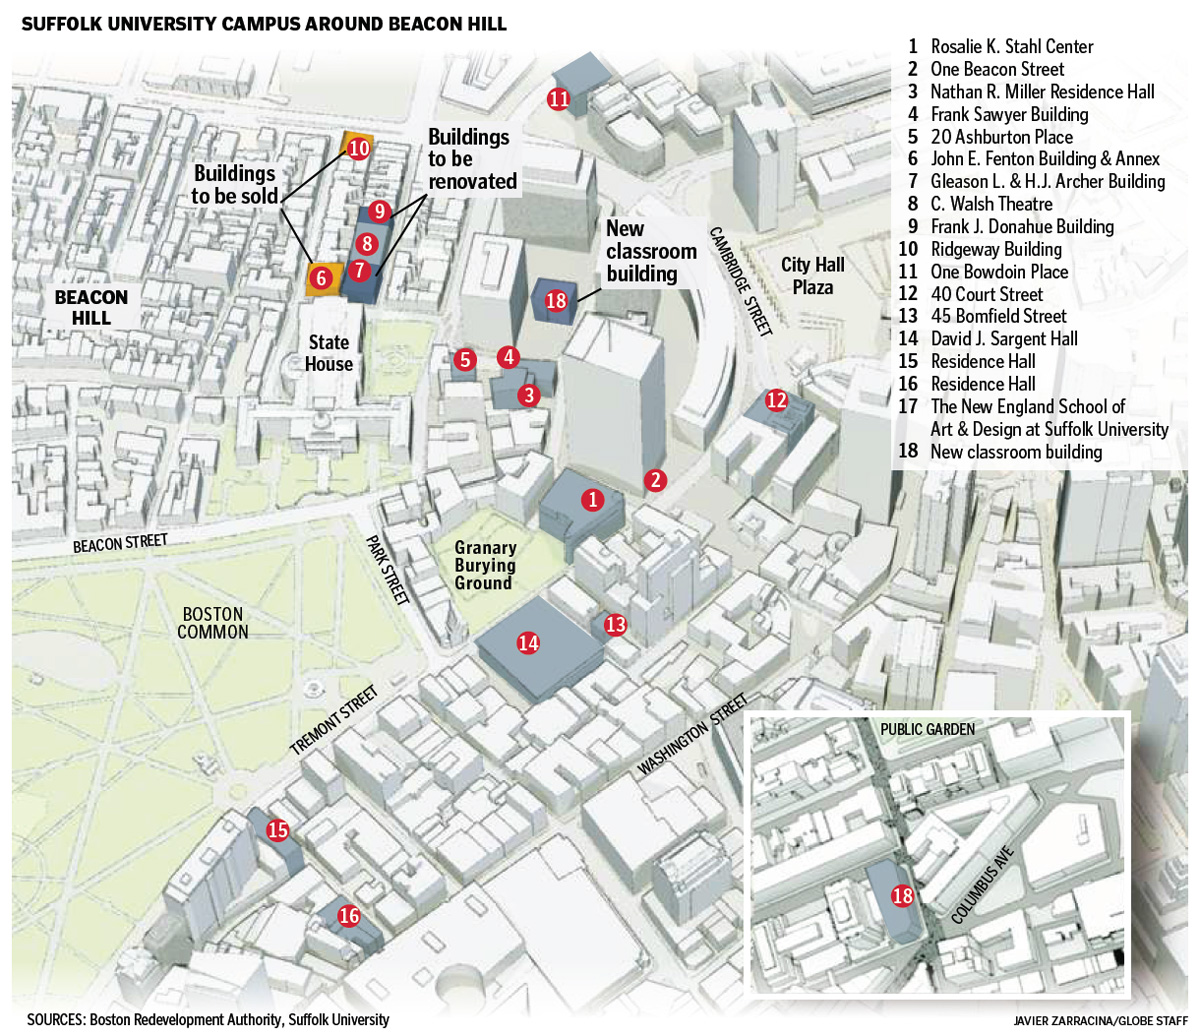 Suffolk University shifts core of campus downtown